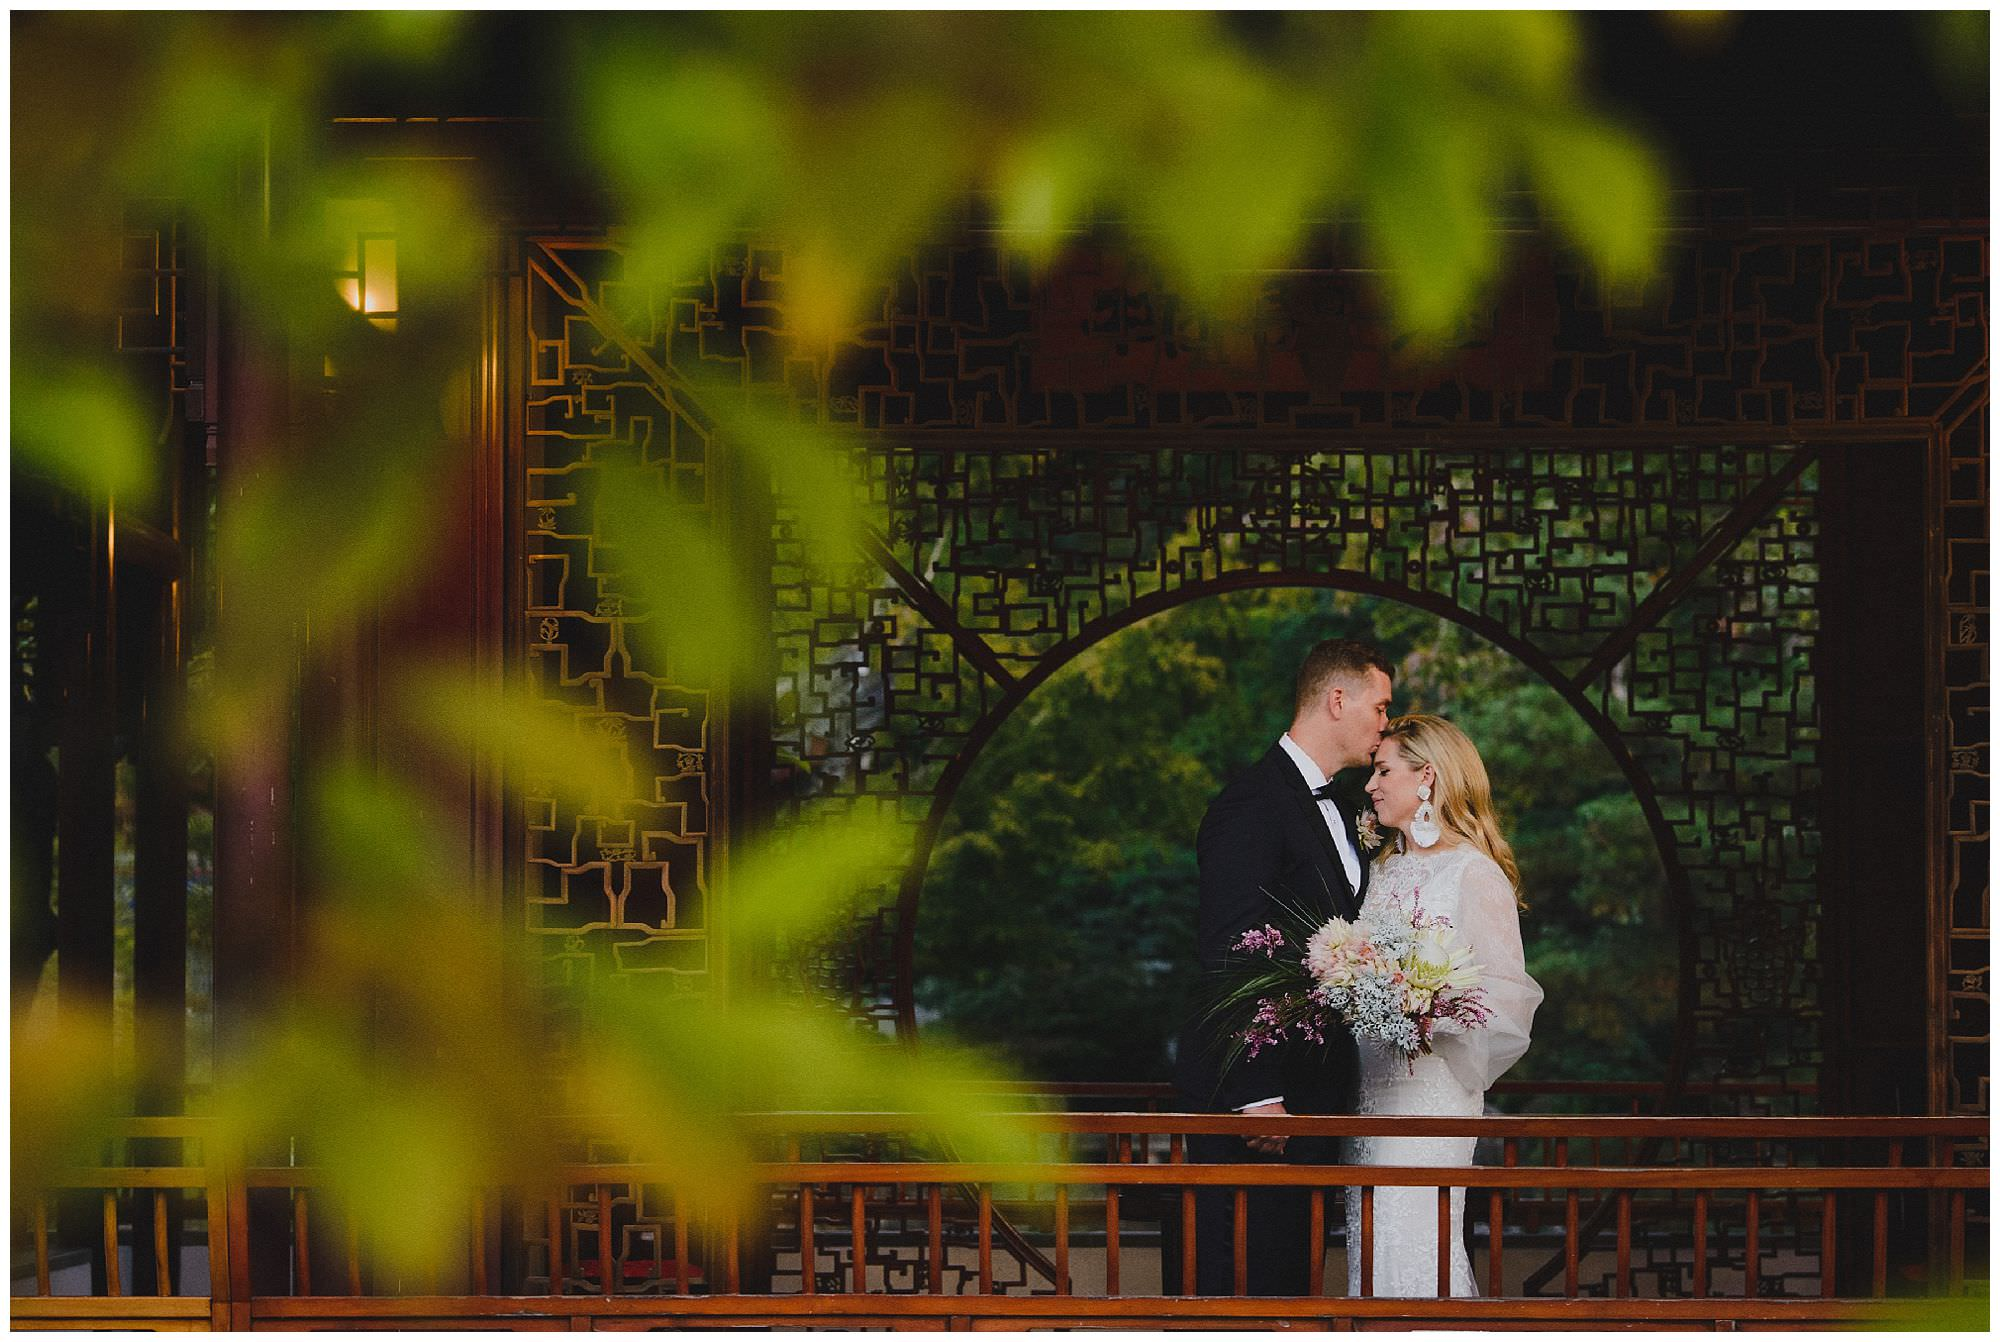 Bride and Groom kiss at sunset after their wedding ceremony at Dr. Sun Yat-Sen Classical Chinese Gardens, elopement, intimate wedding, candid wedding photography